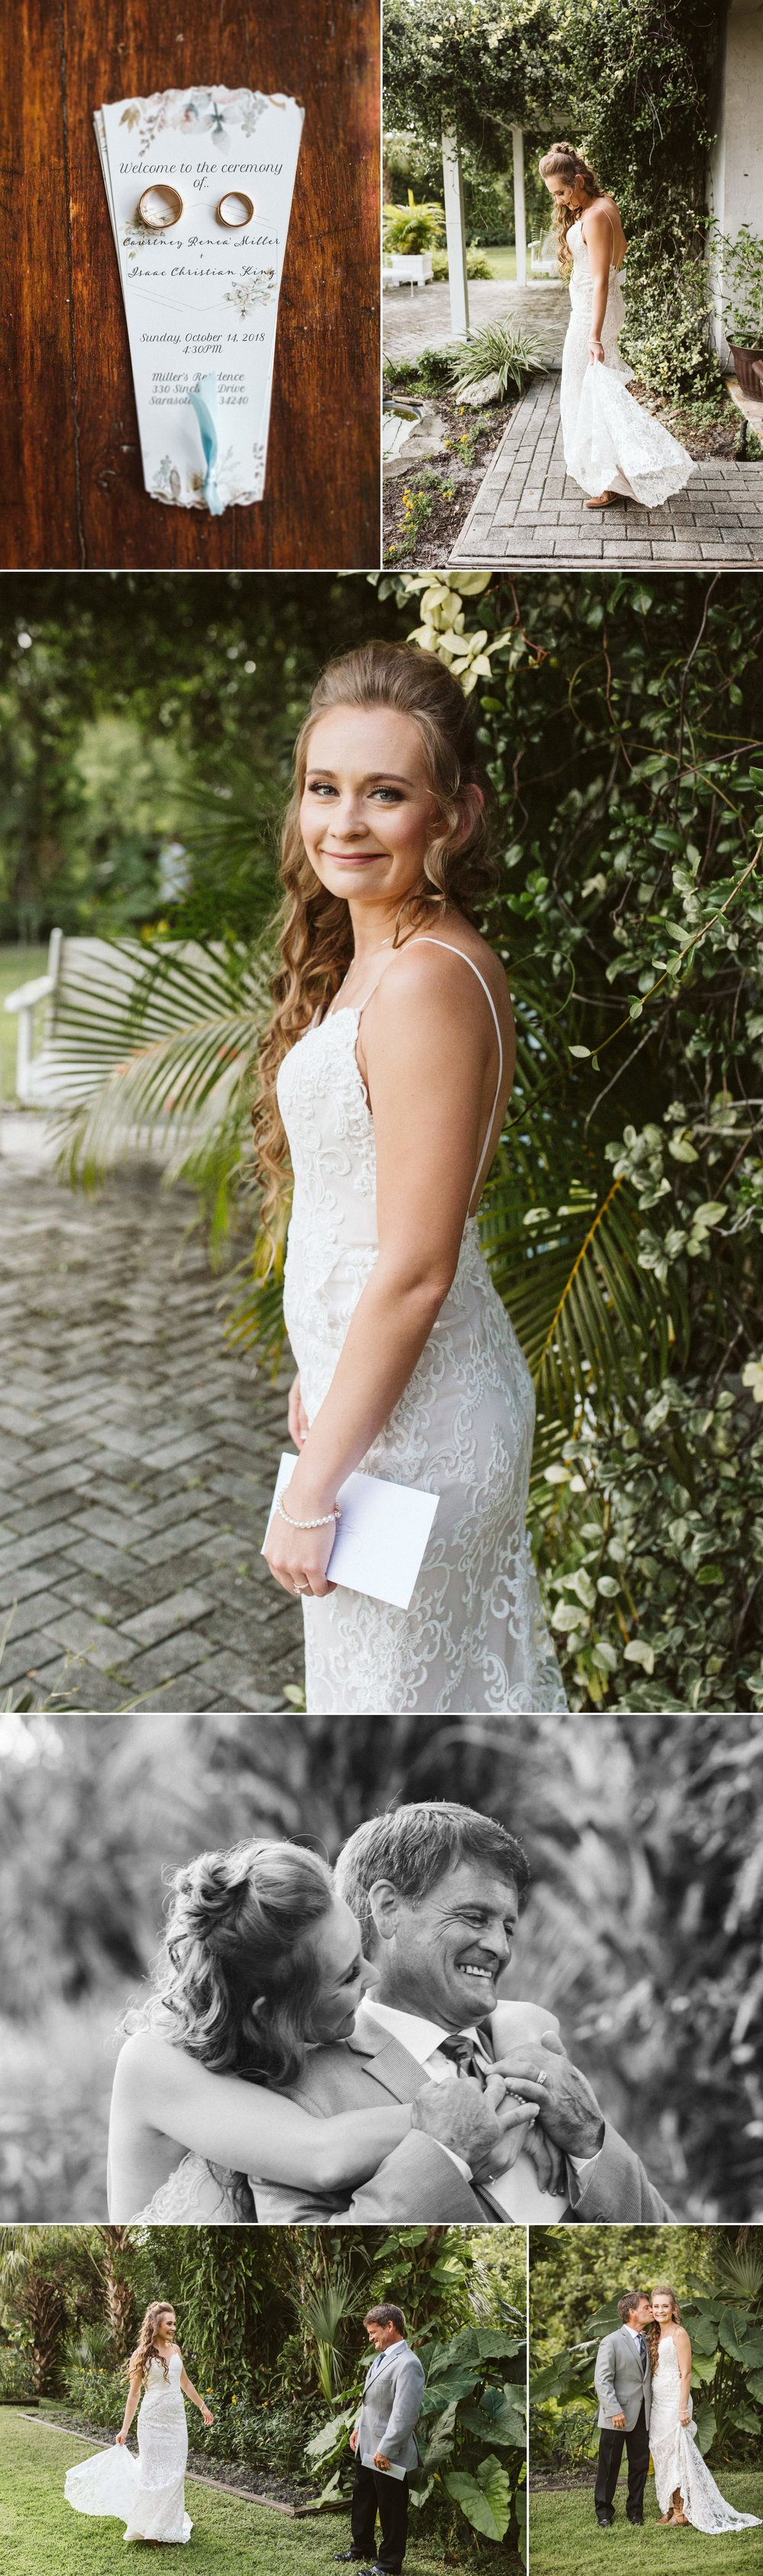 Romantic Floral Outdoor Field Chapel Wedding- Sarasota Florida- Courtney & Isaac5.jpg